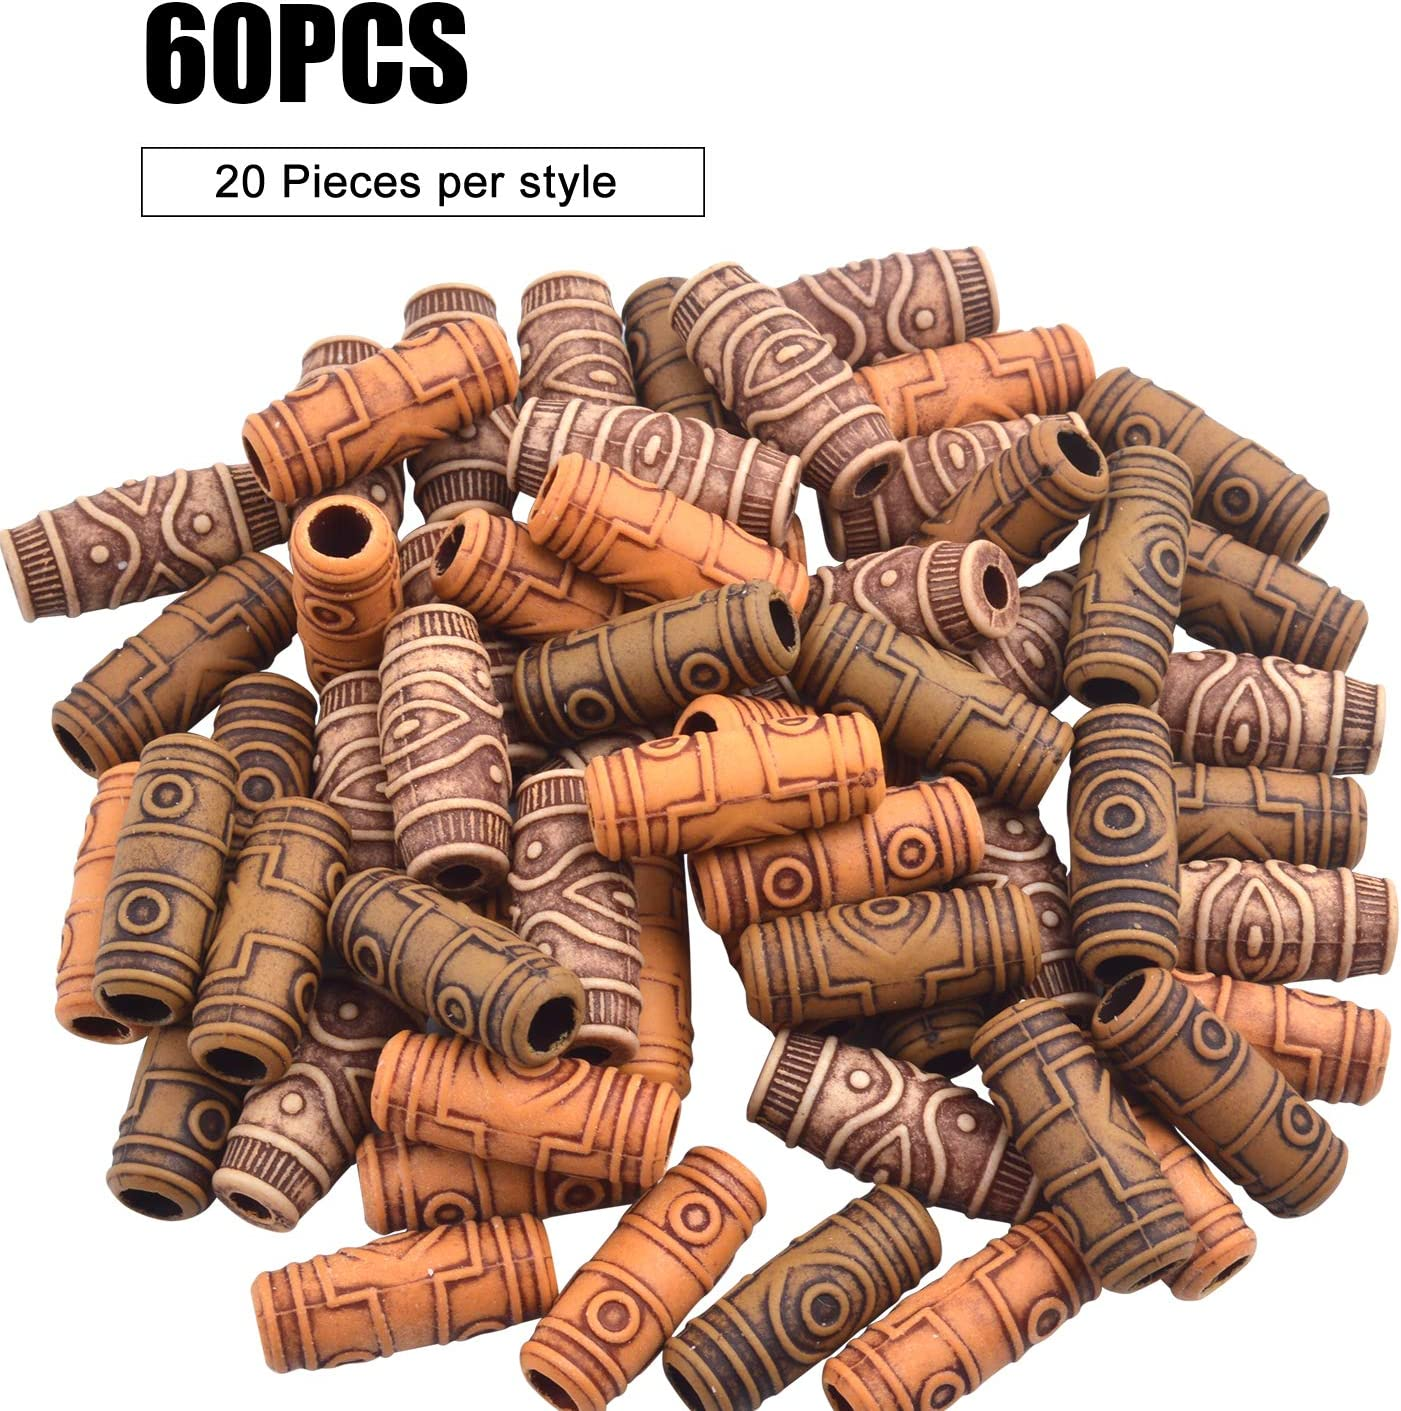 Pack of 20 Wooden Salon Large Hole Round Spacer Hair Beads for DIY Projects